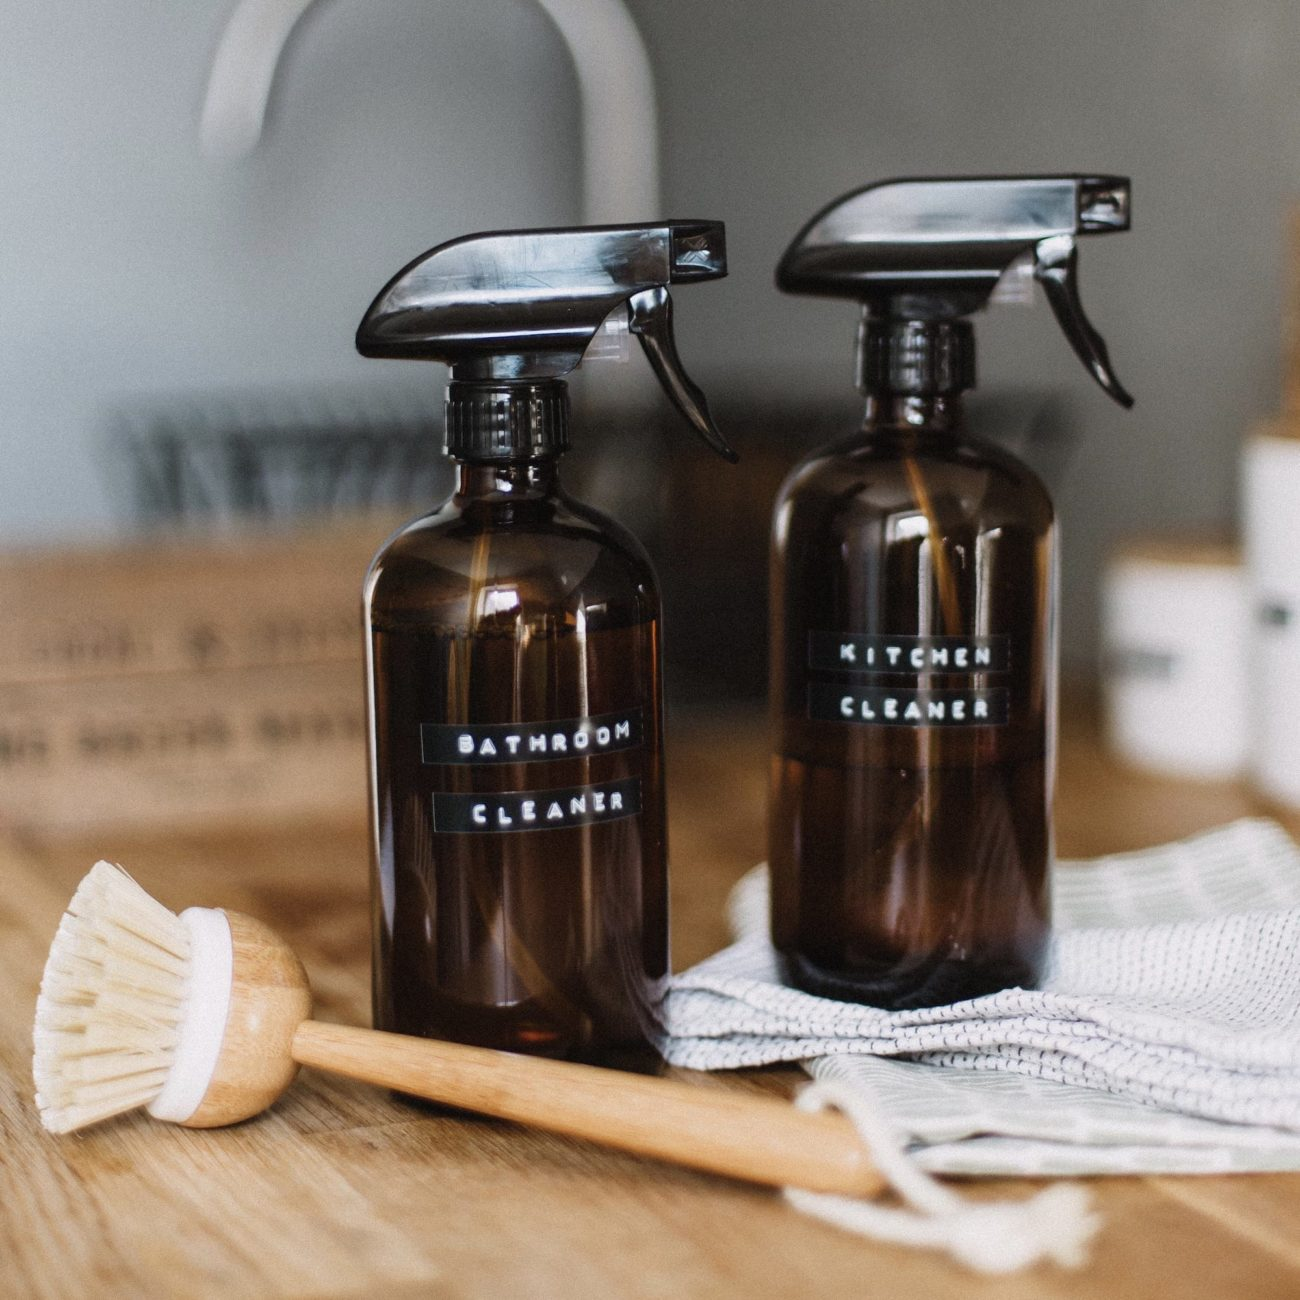 Two glass cleaning bottles sitting next to a wooden scrub brush and towels on a counter.